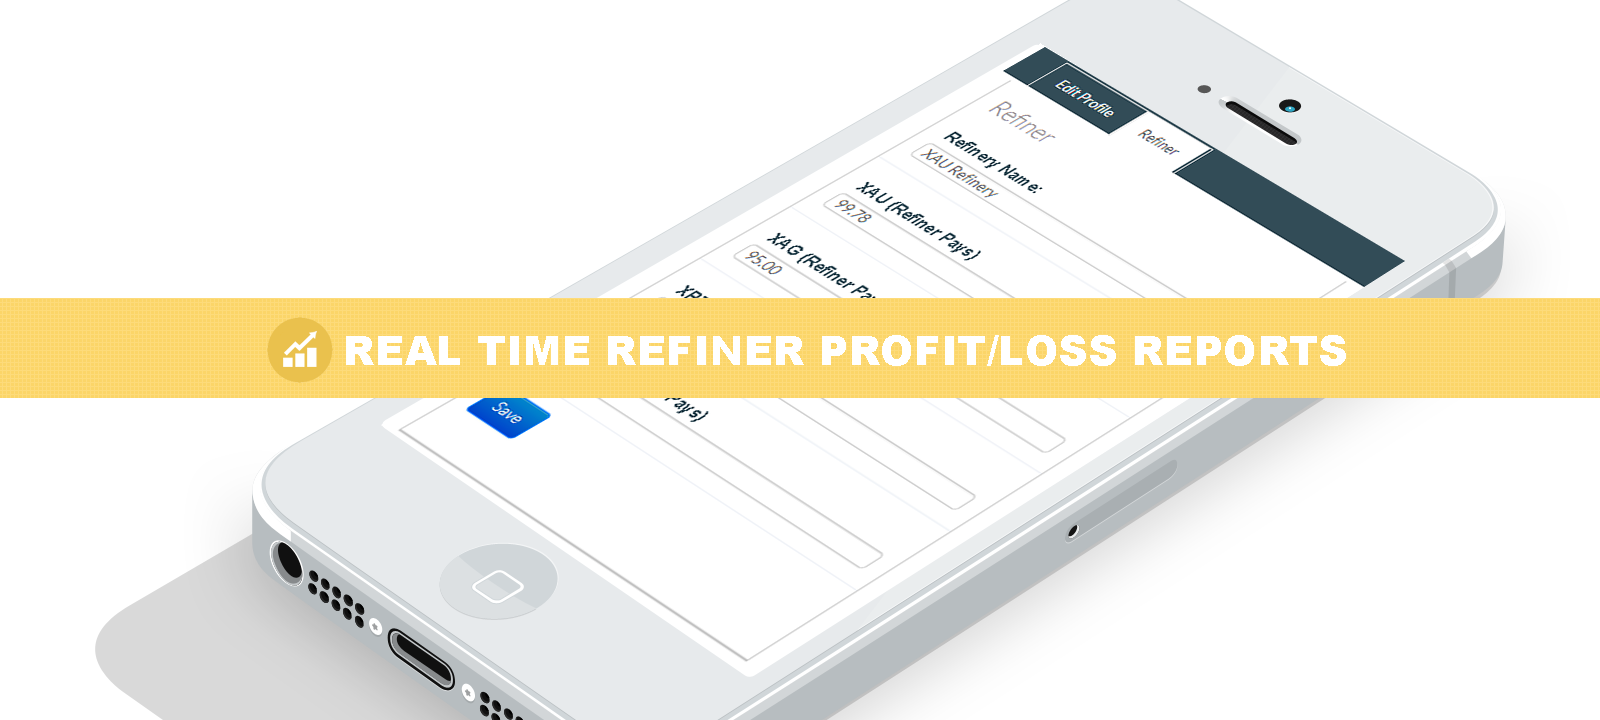 Track profit and loss on your precious metals refining portfolio.